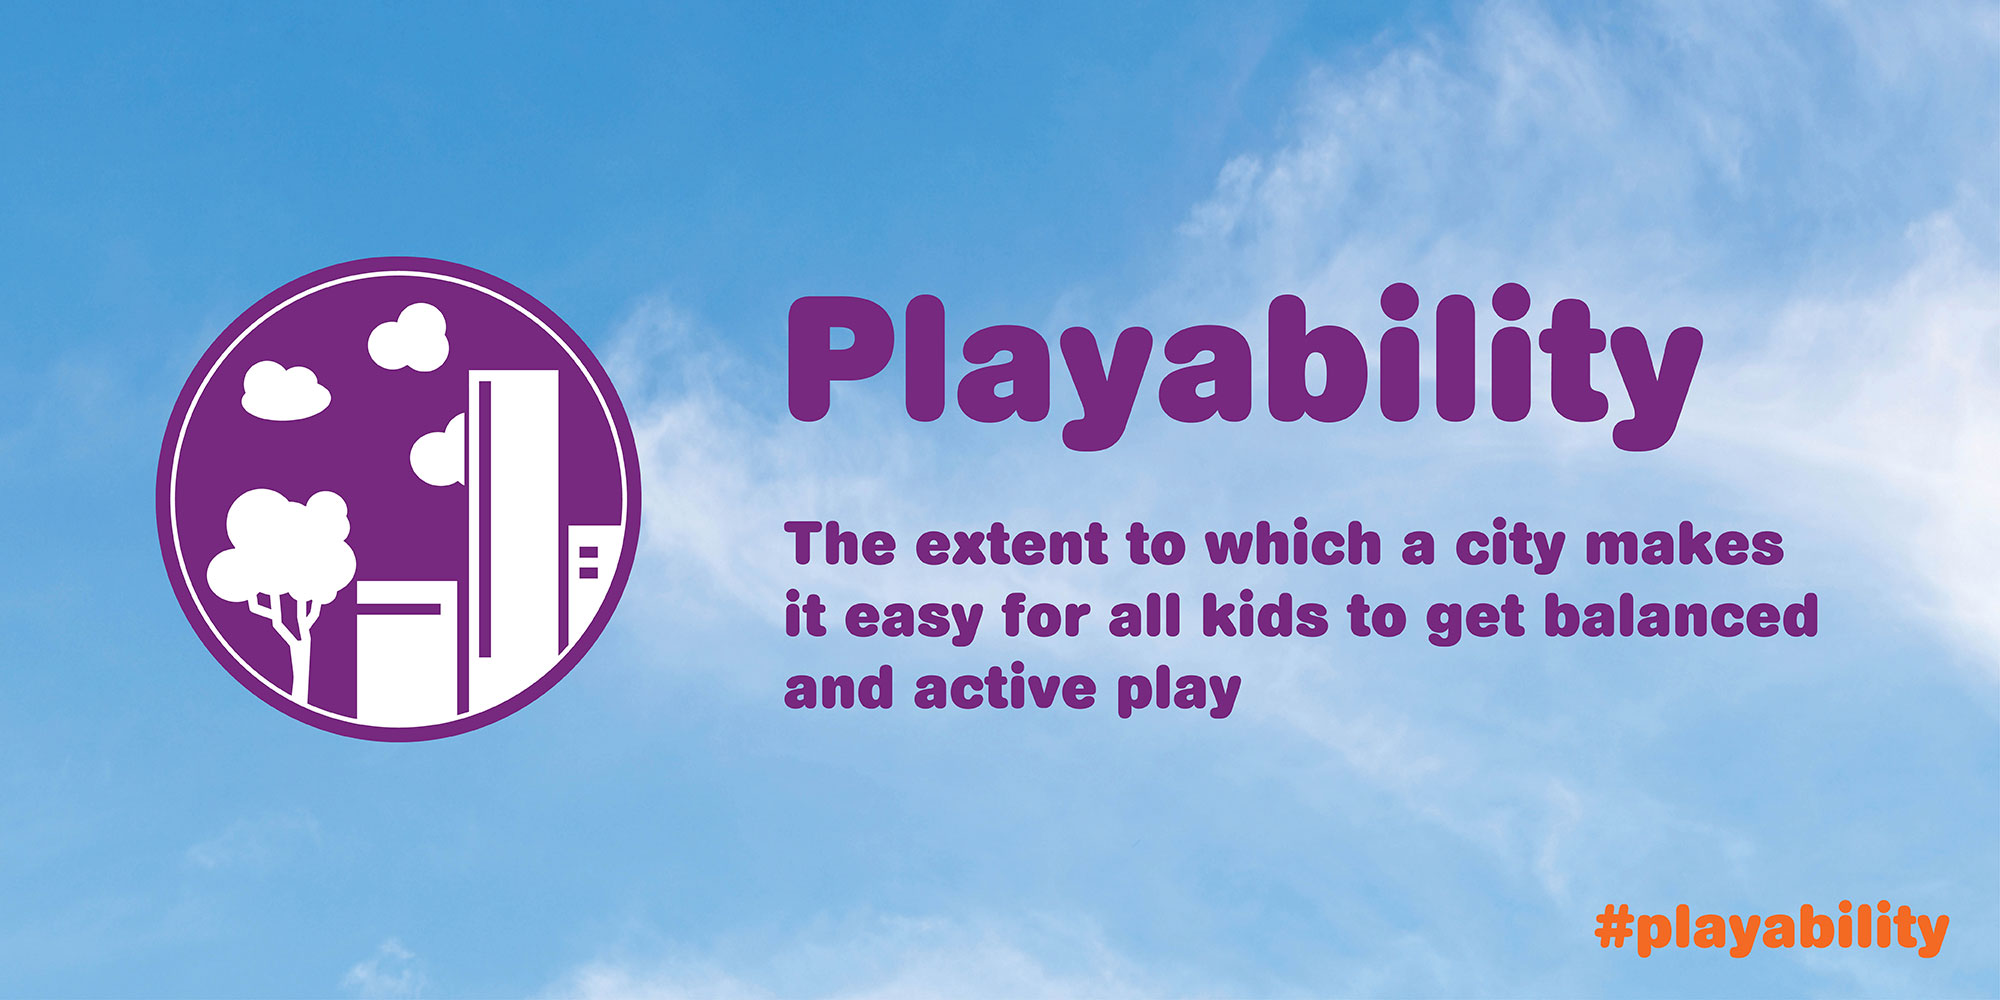 What is Playability?